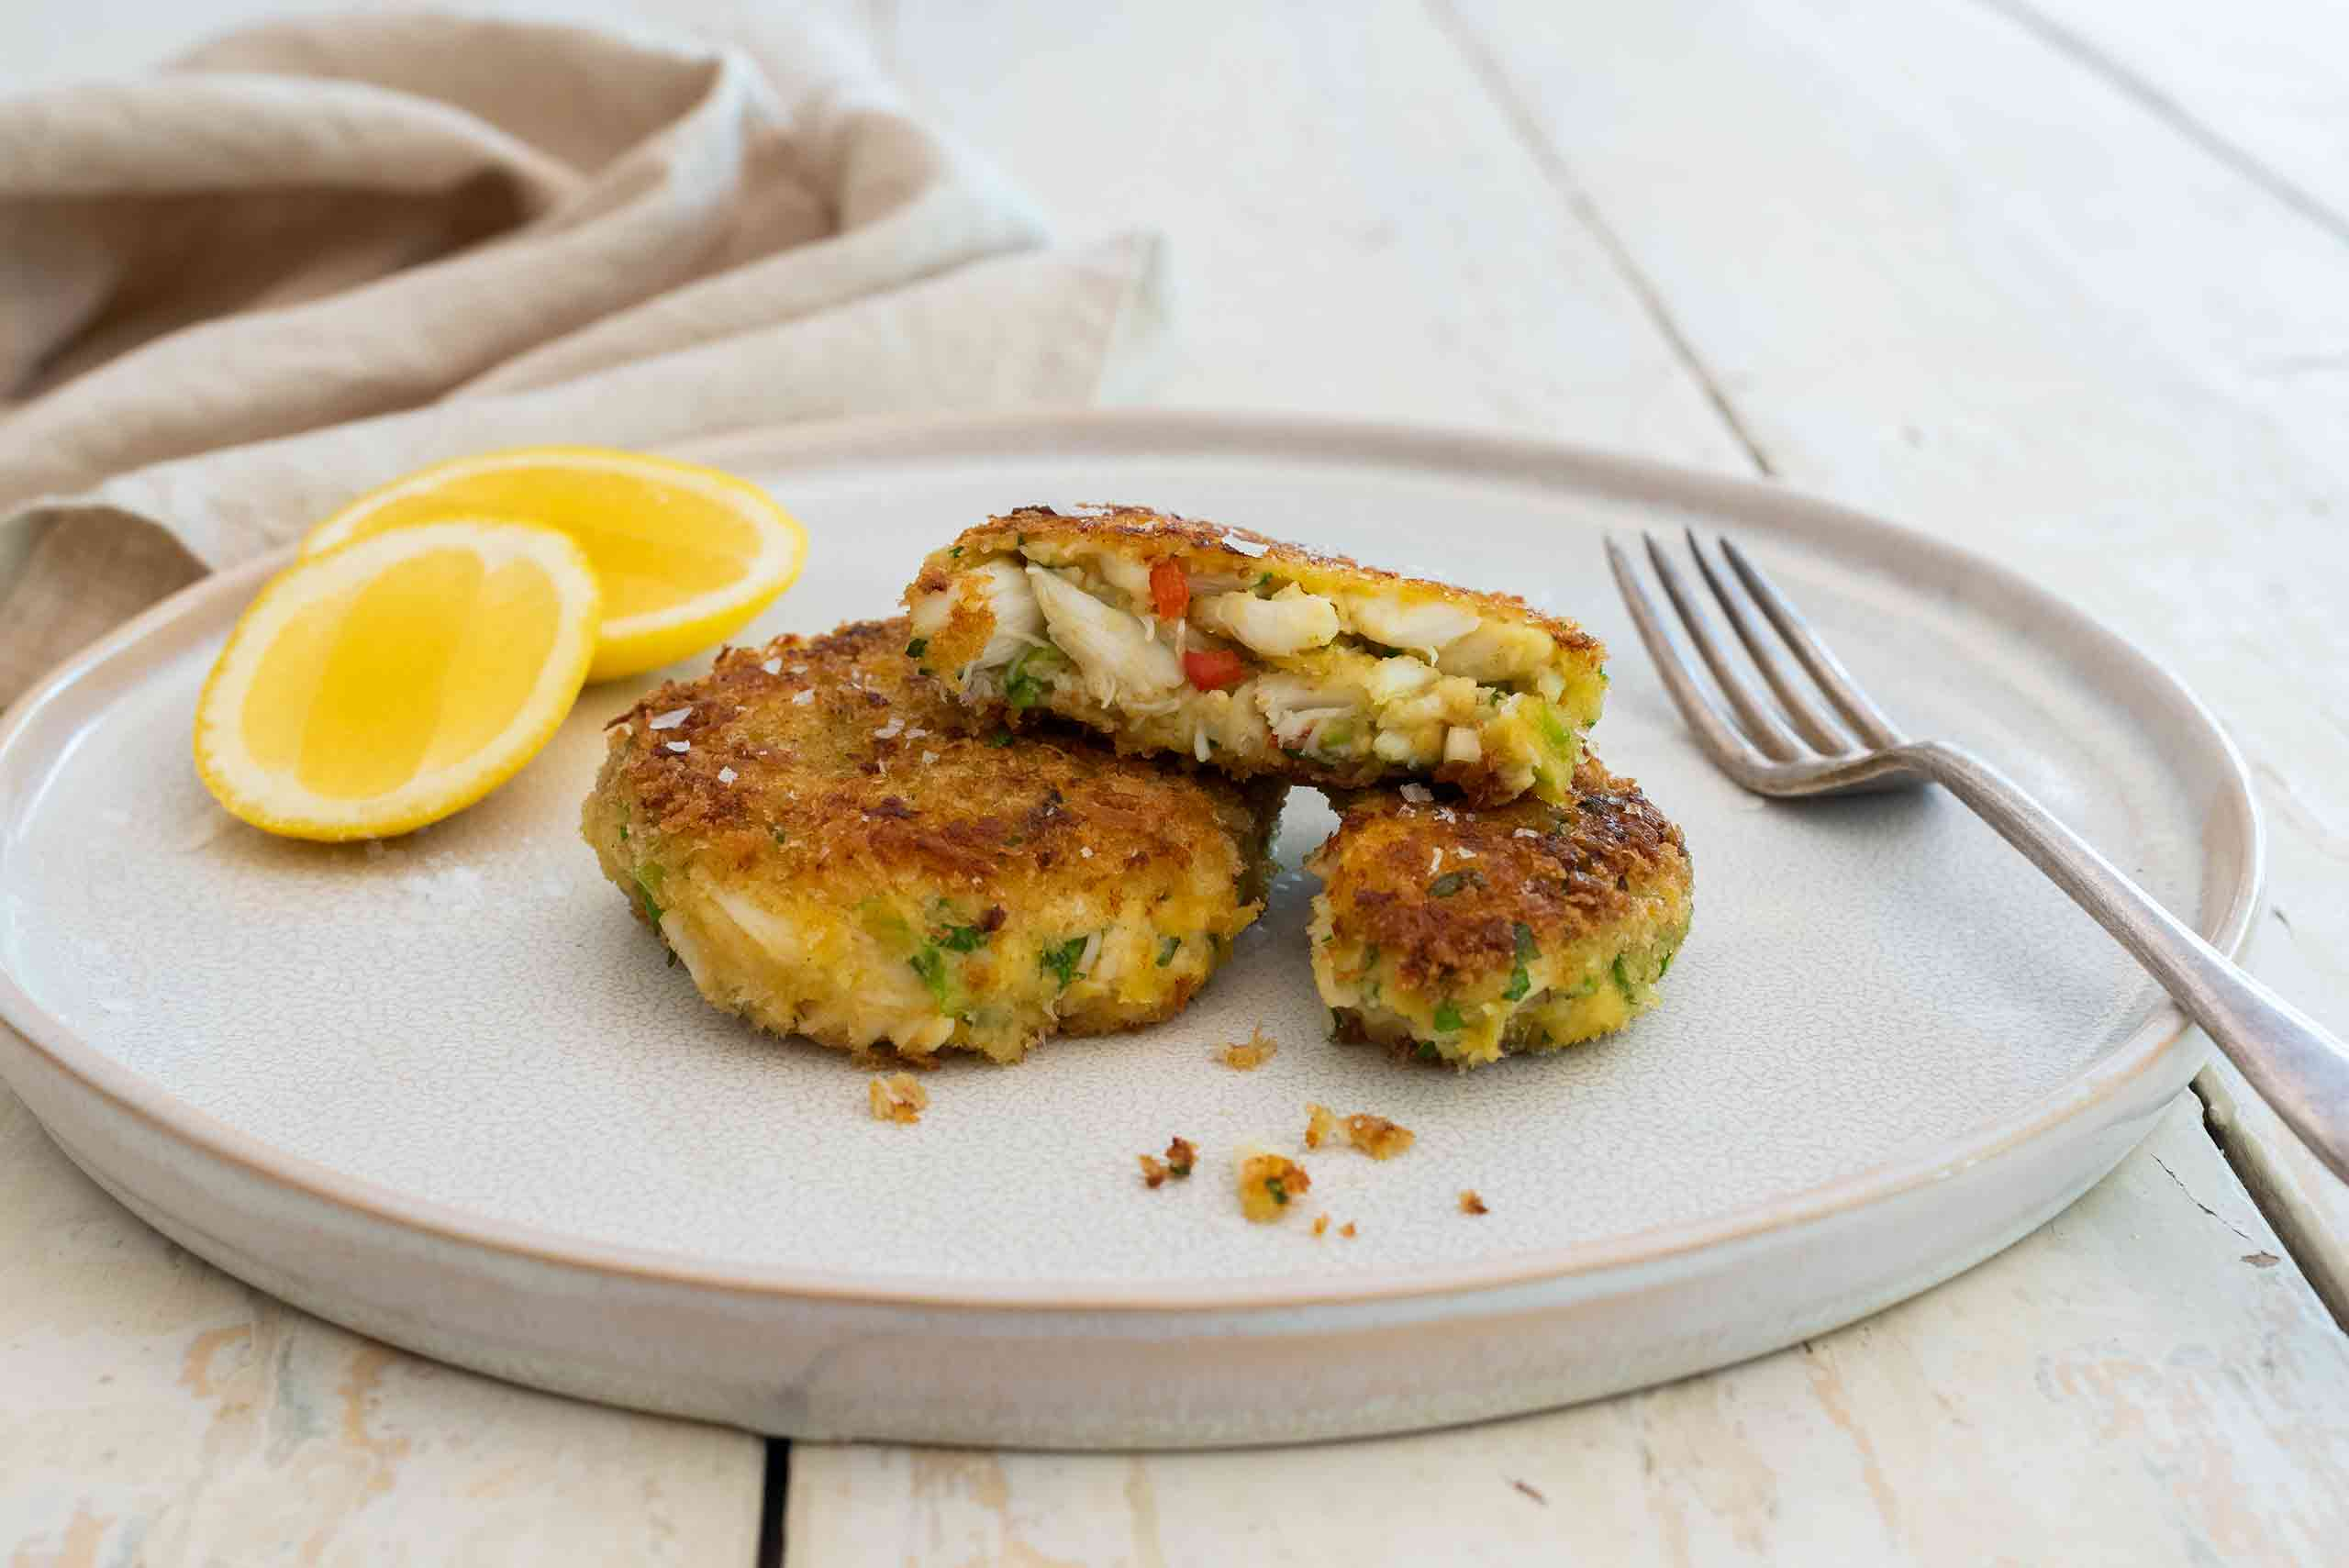 Editorial food photography featuring Crab Cakes with Fraser Isle Spanner Crab by Australian food expert Tawnya Bahr